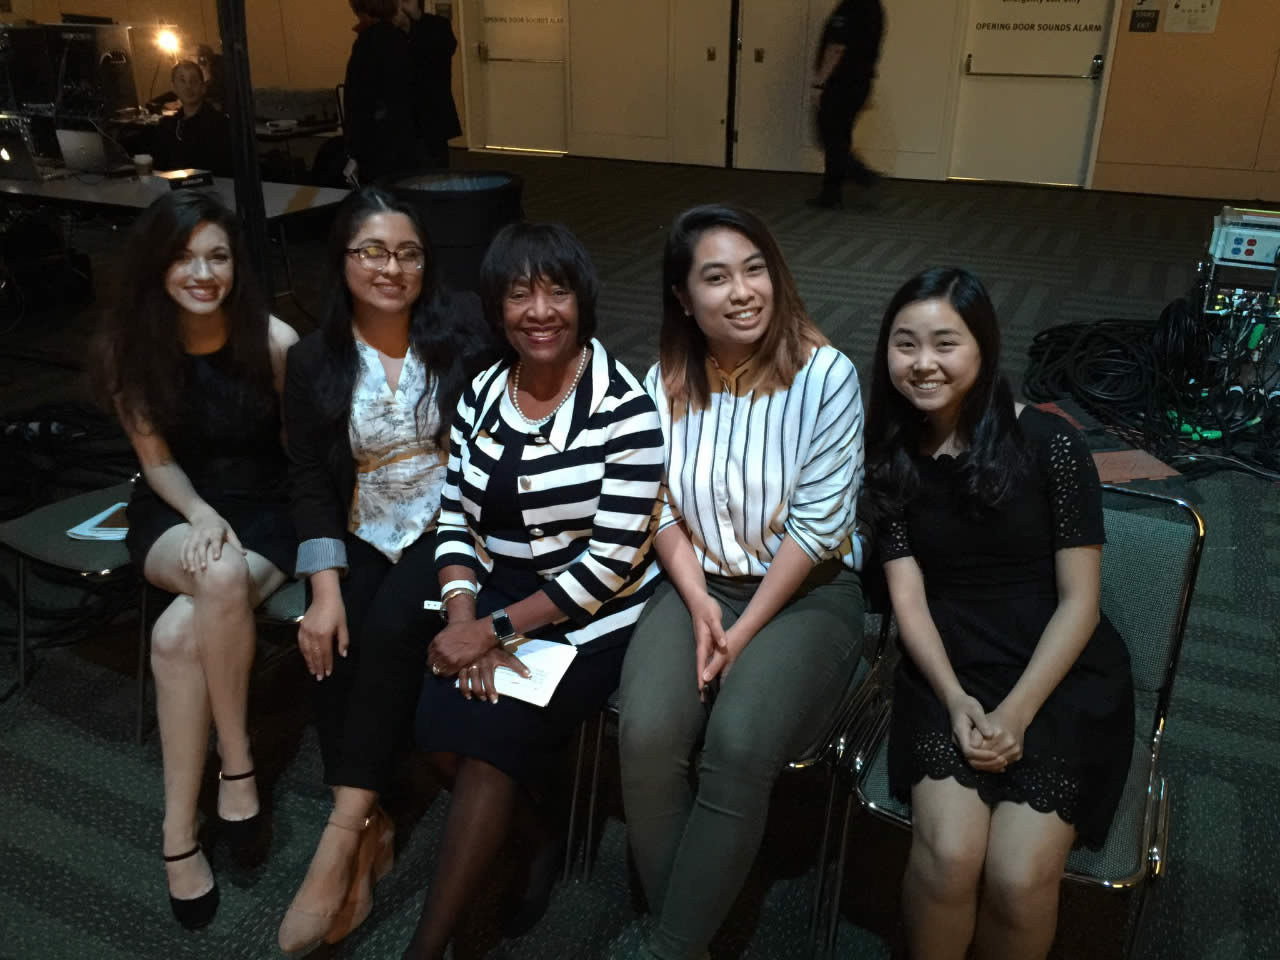 <div class='meta'><div class='origin-logo' data-origin='none'></div><span class='caption-text' data-credit=''>Scholarship recipients at the West at the Professional BusinessWomen of California Conference in San Francisco on March, 28, 2017.</span></div>